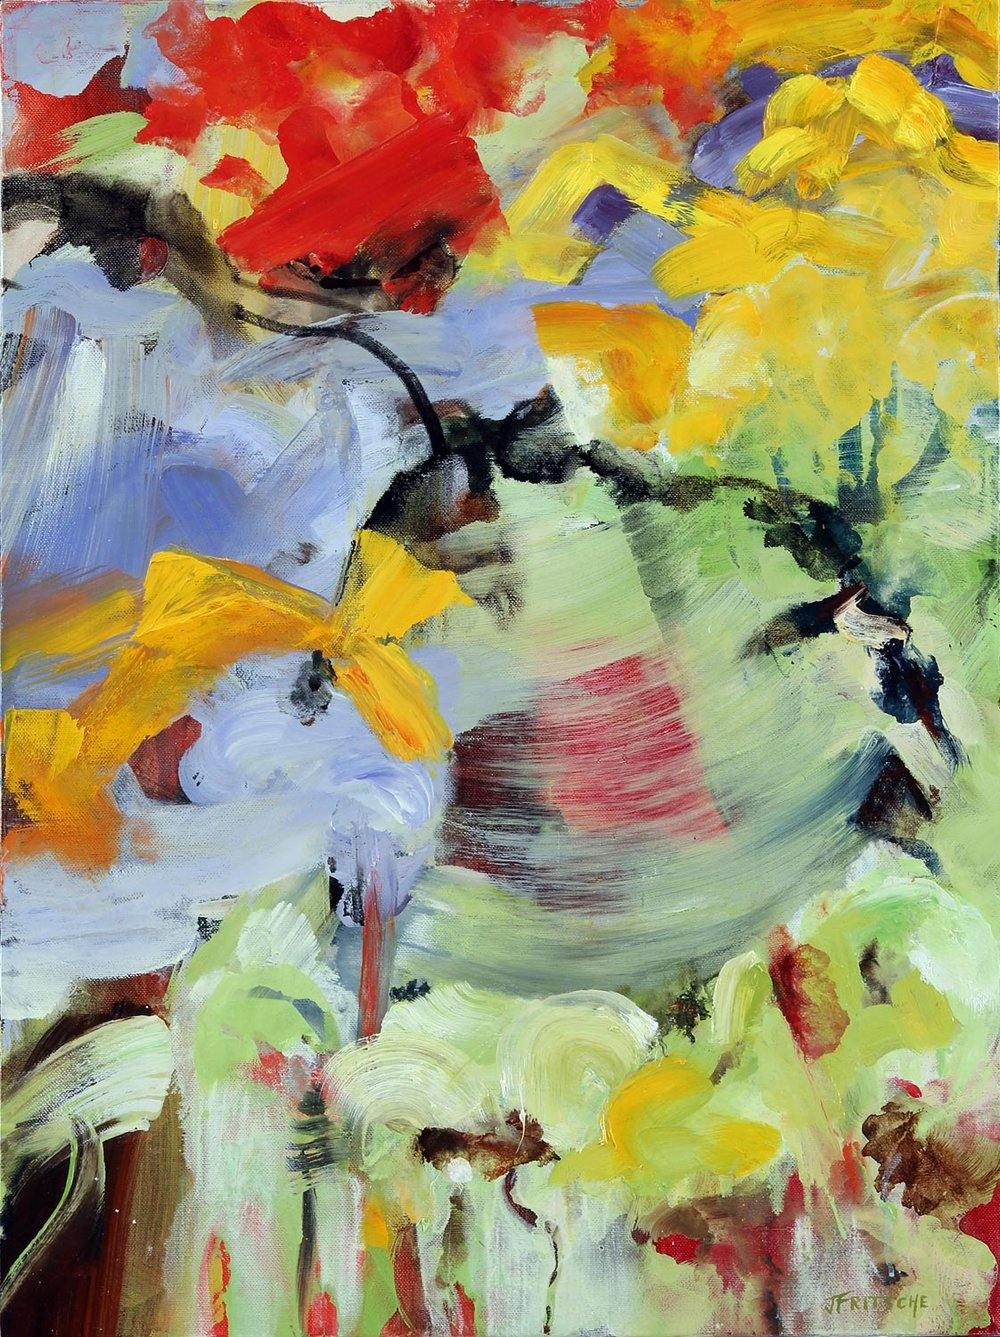 """Everything's Vine from the Series: Abstracts - Oil on canvas - 24"""" x 18"""" - 20 14"""